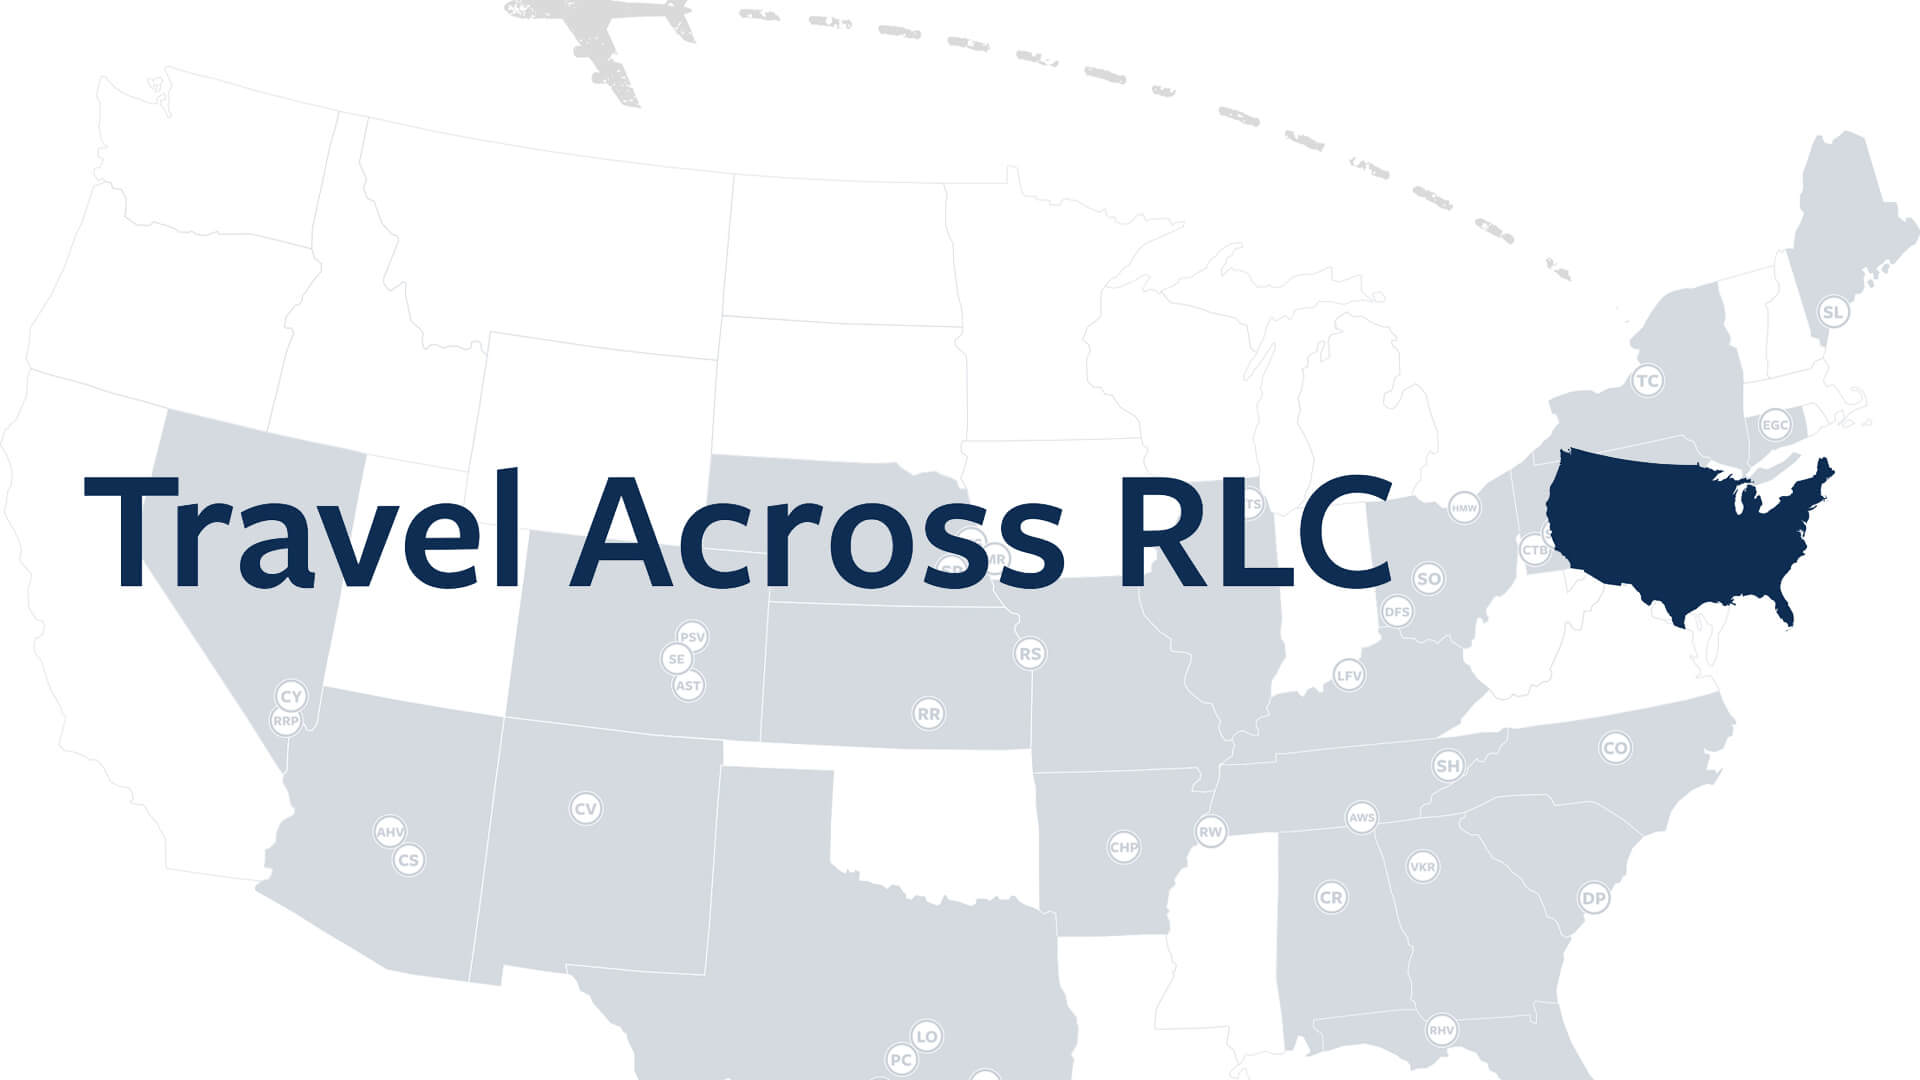 Travel Across RLC